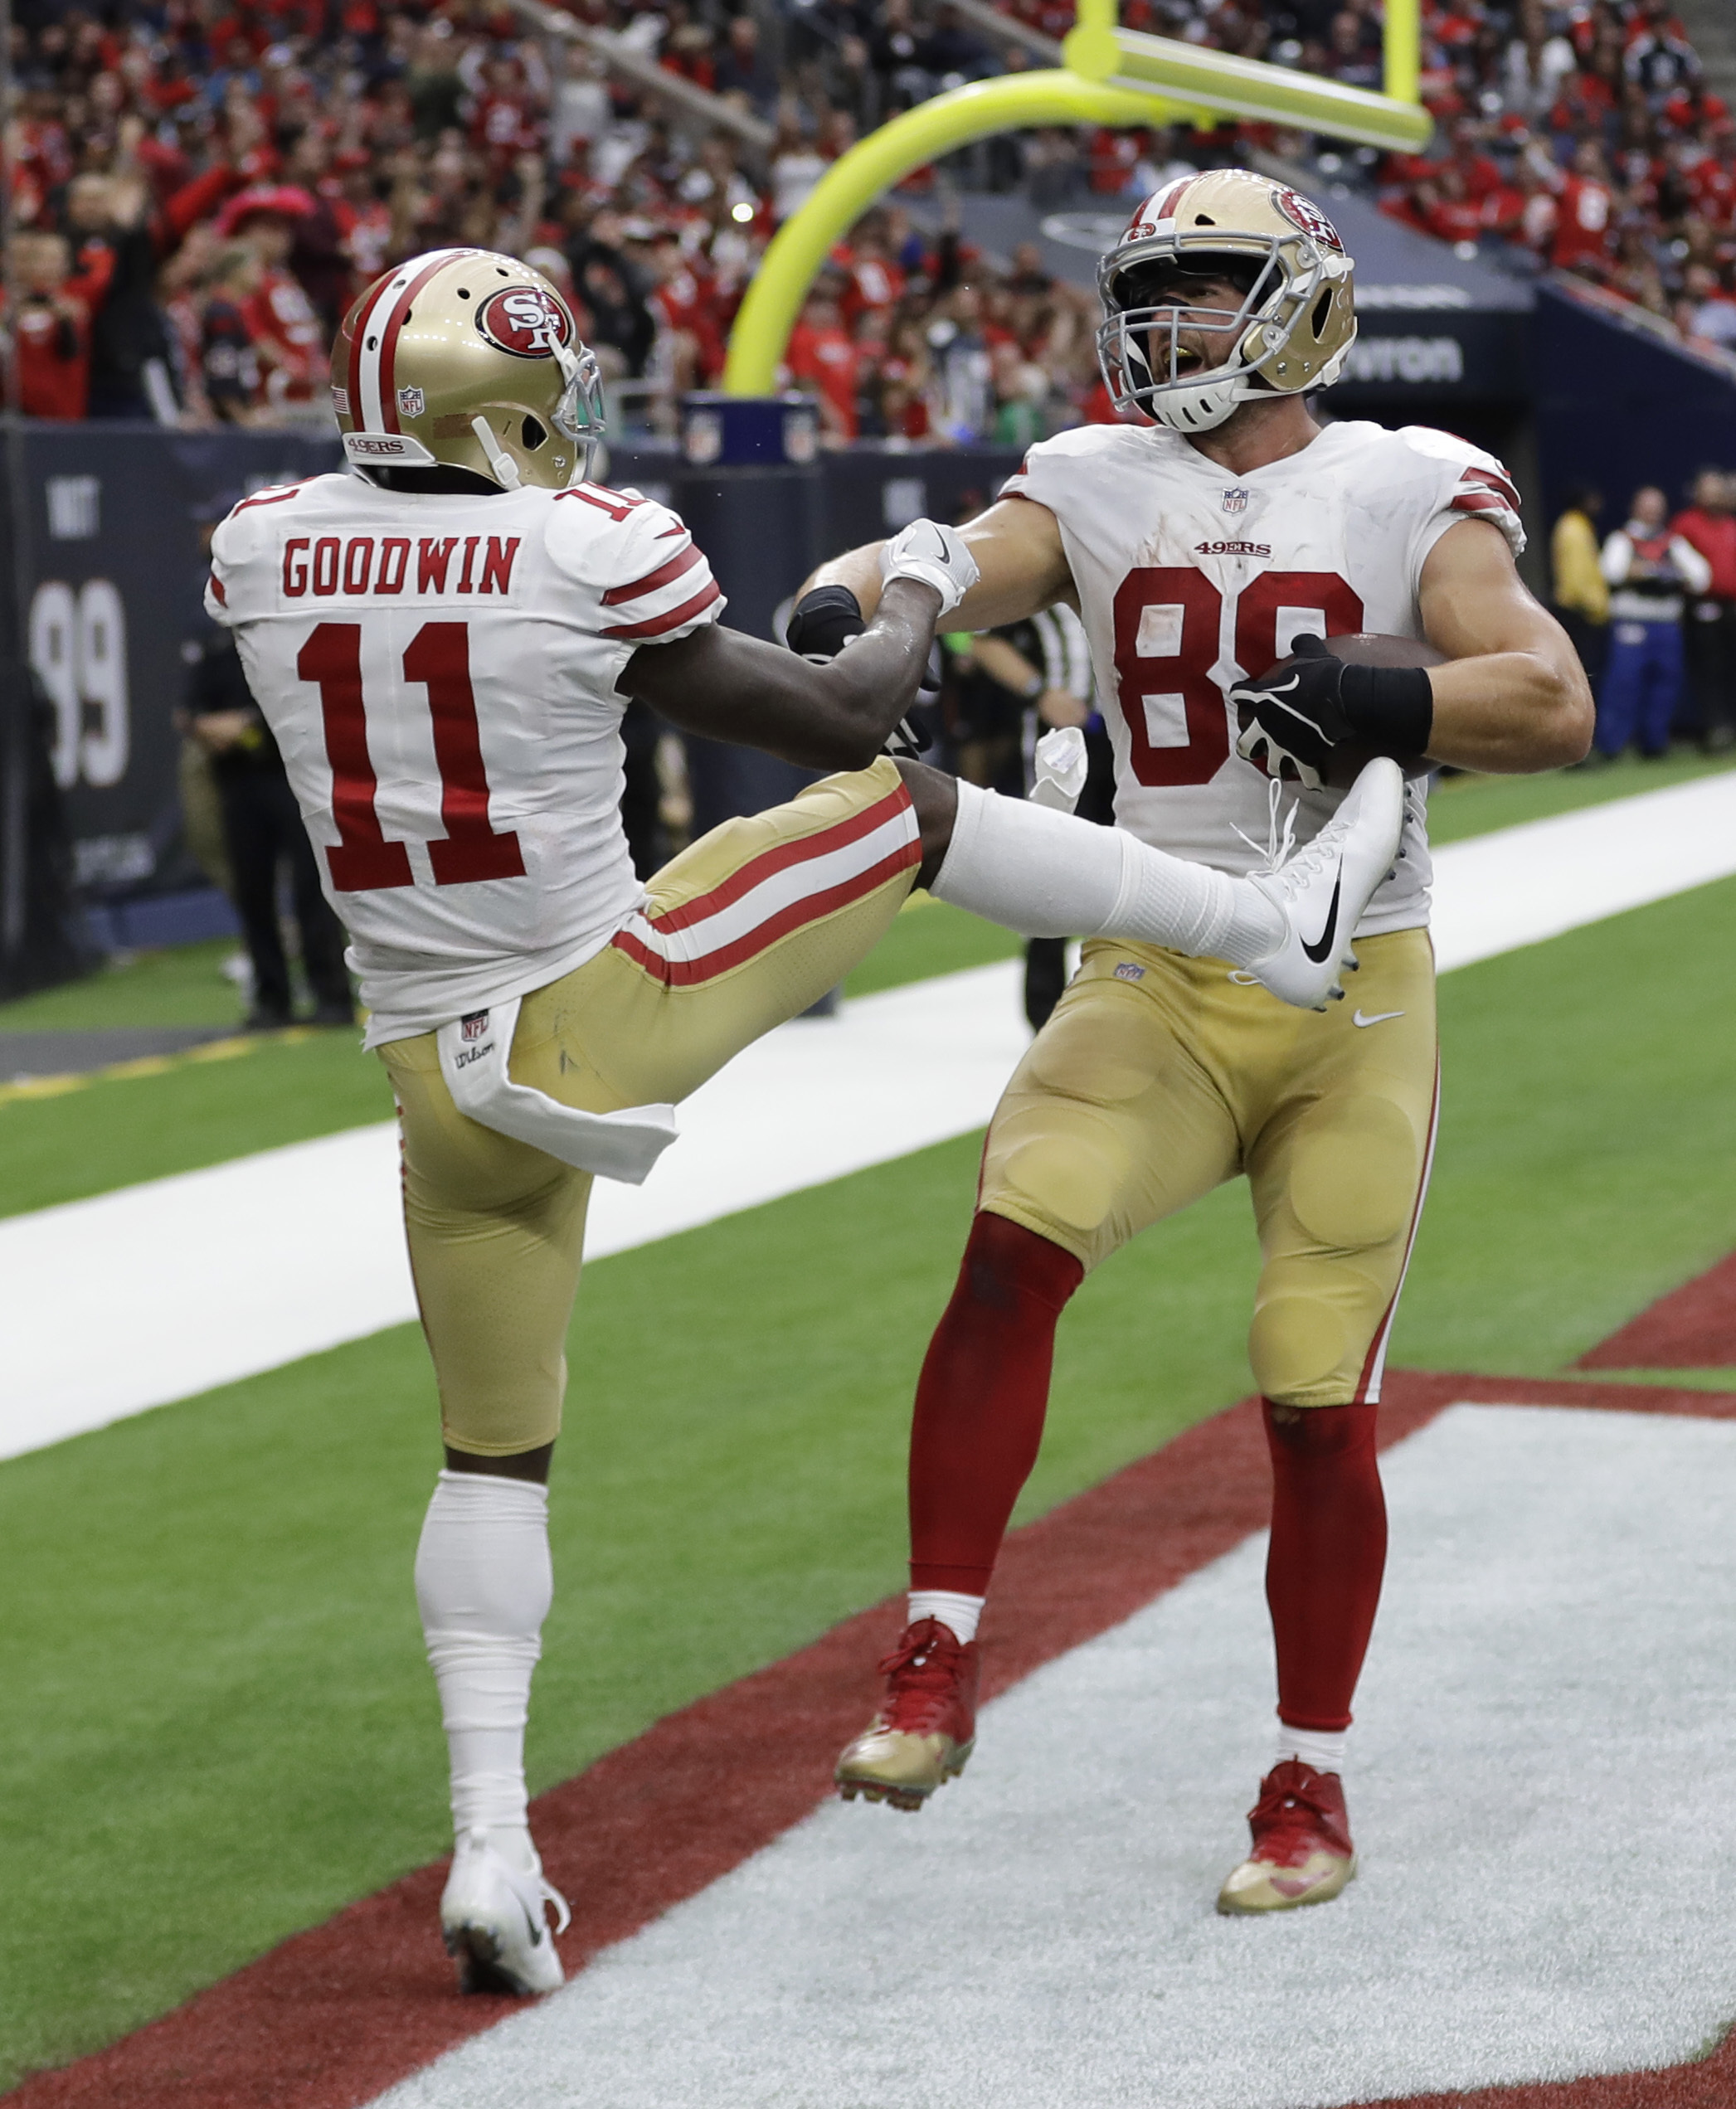 Garoppolo leads 49ers to 26-16 win over Texans